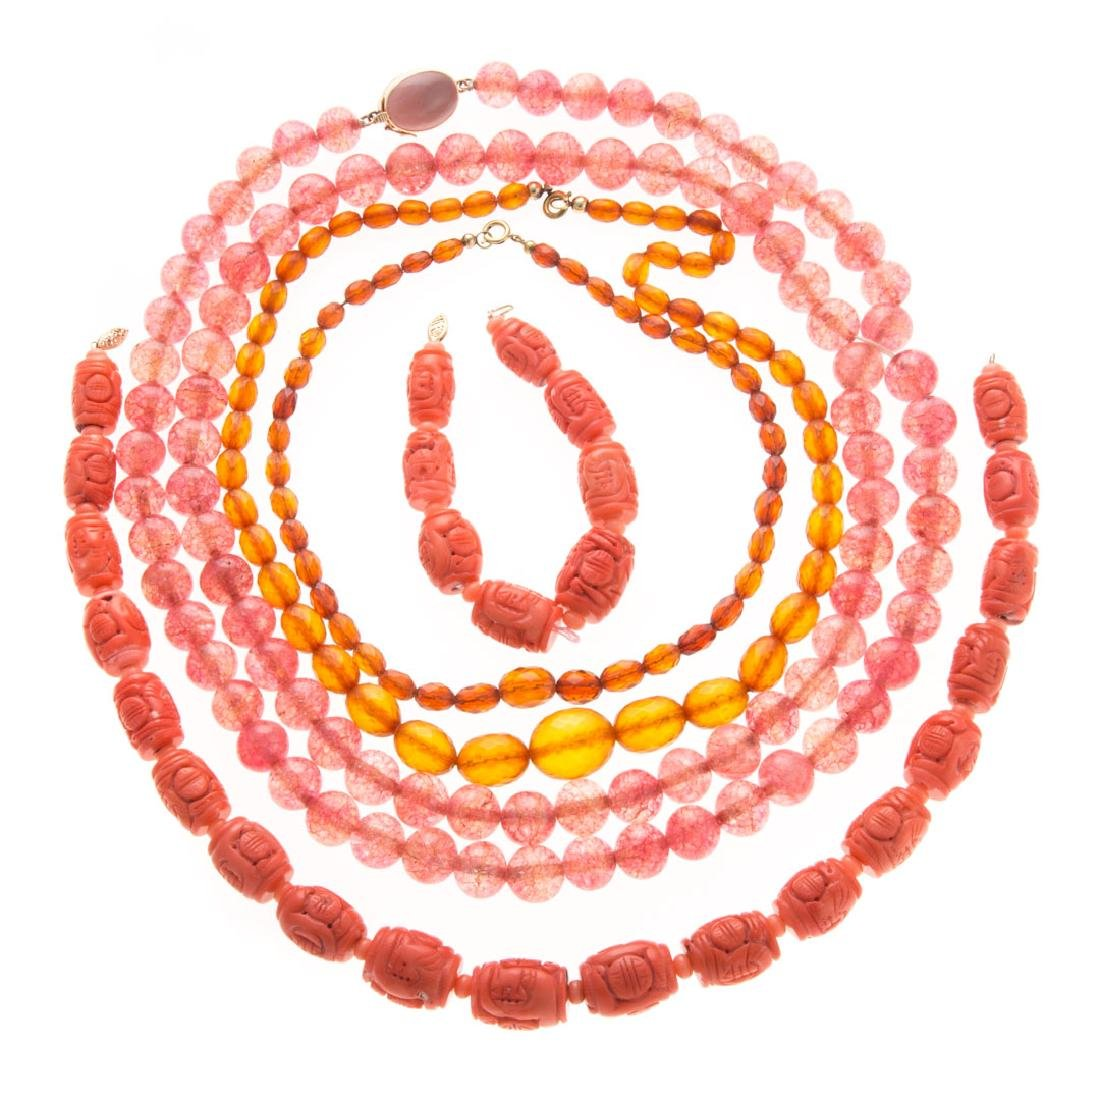 A Collection of Lady's Beaded Necklaces